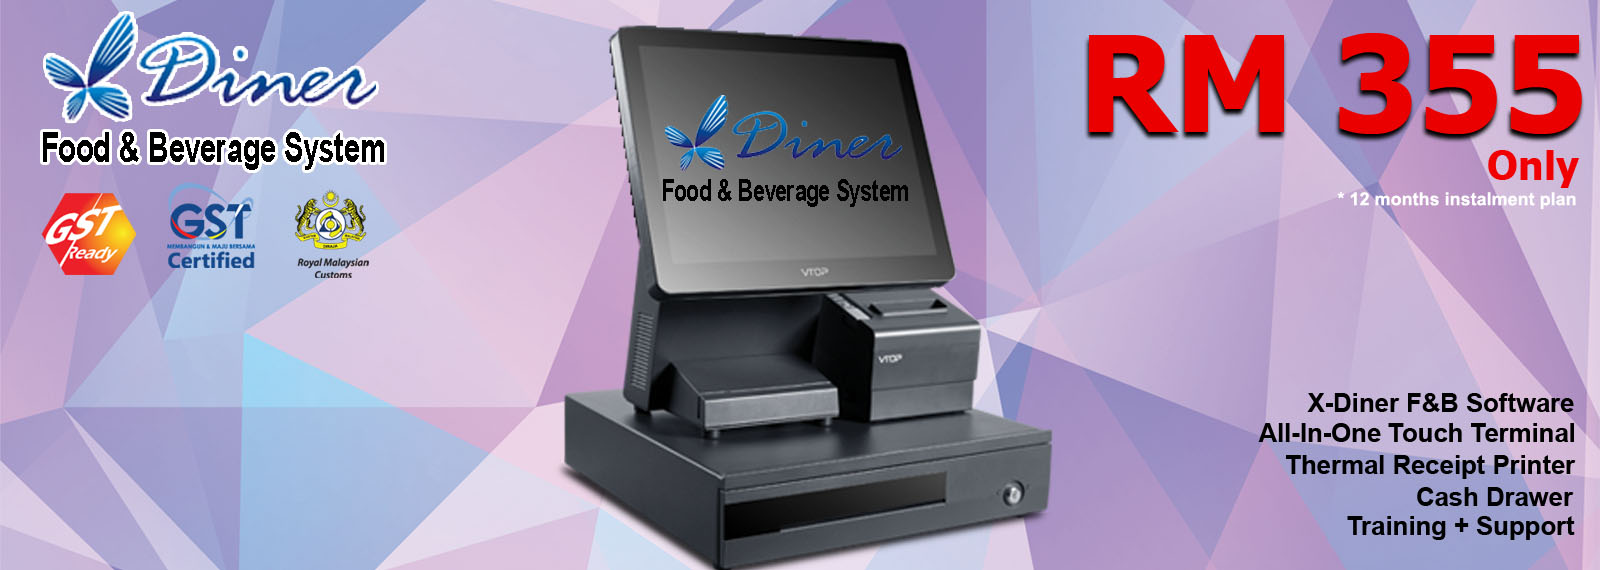 XDiner Food & Beverage Software